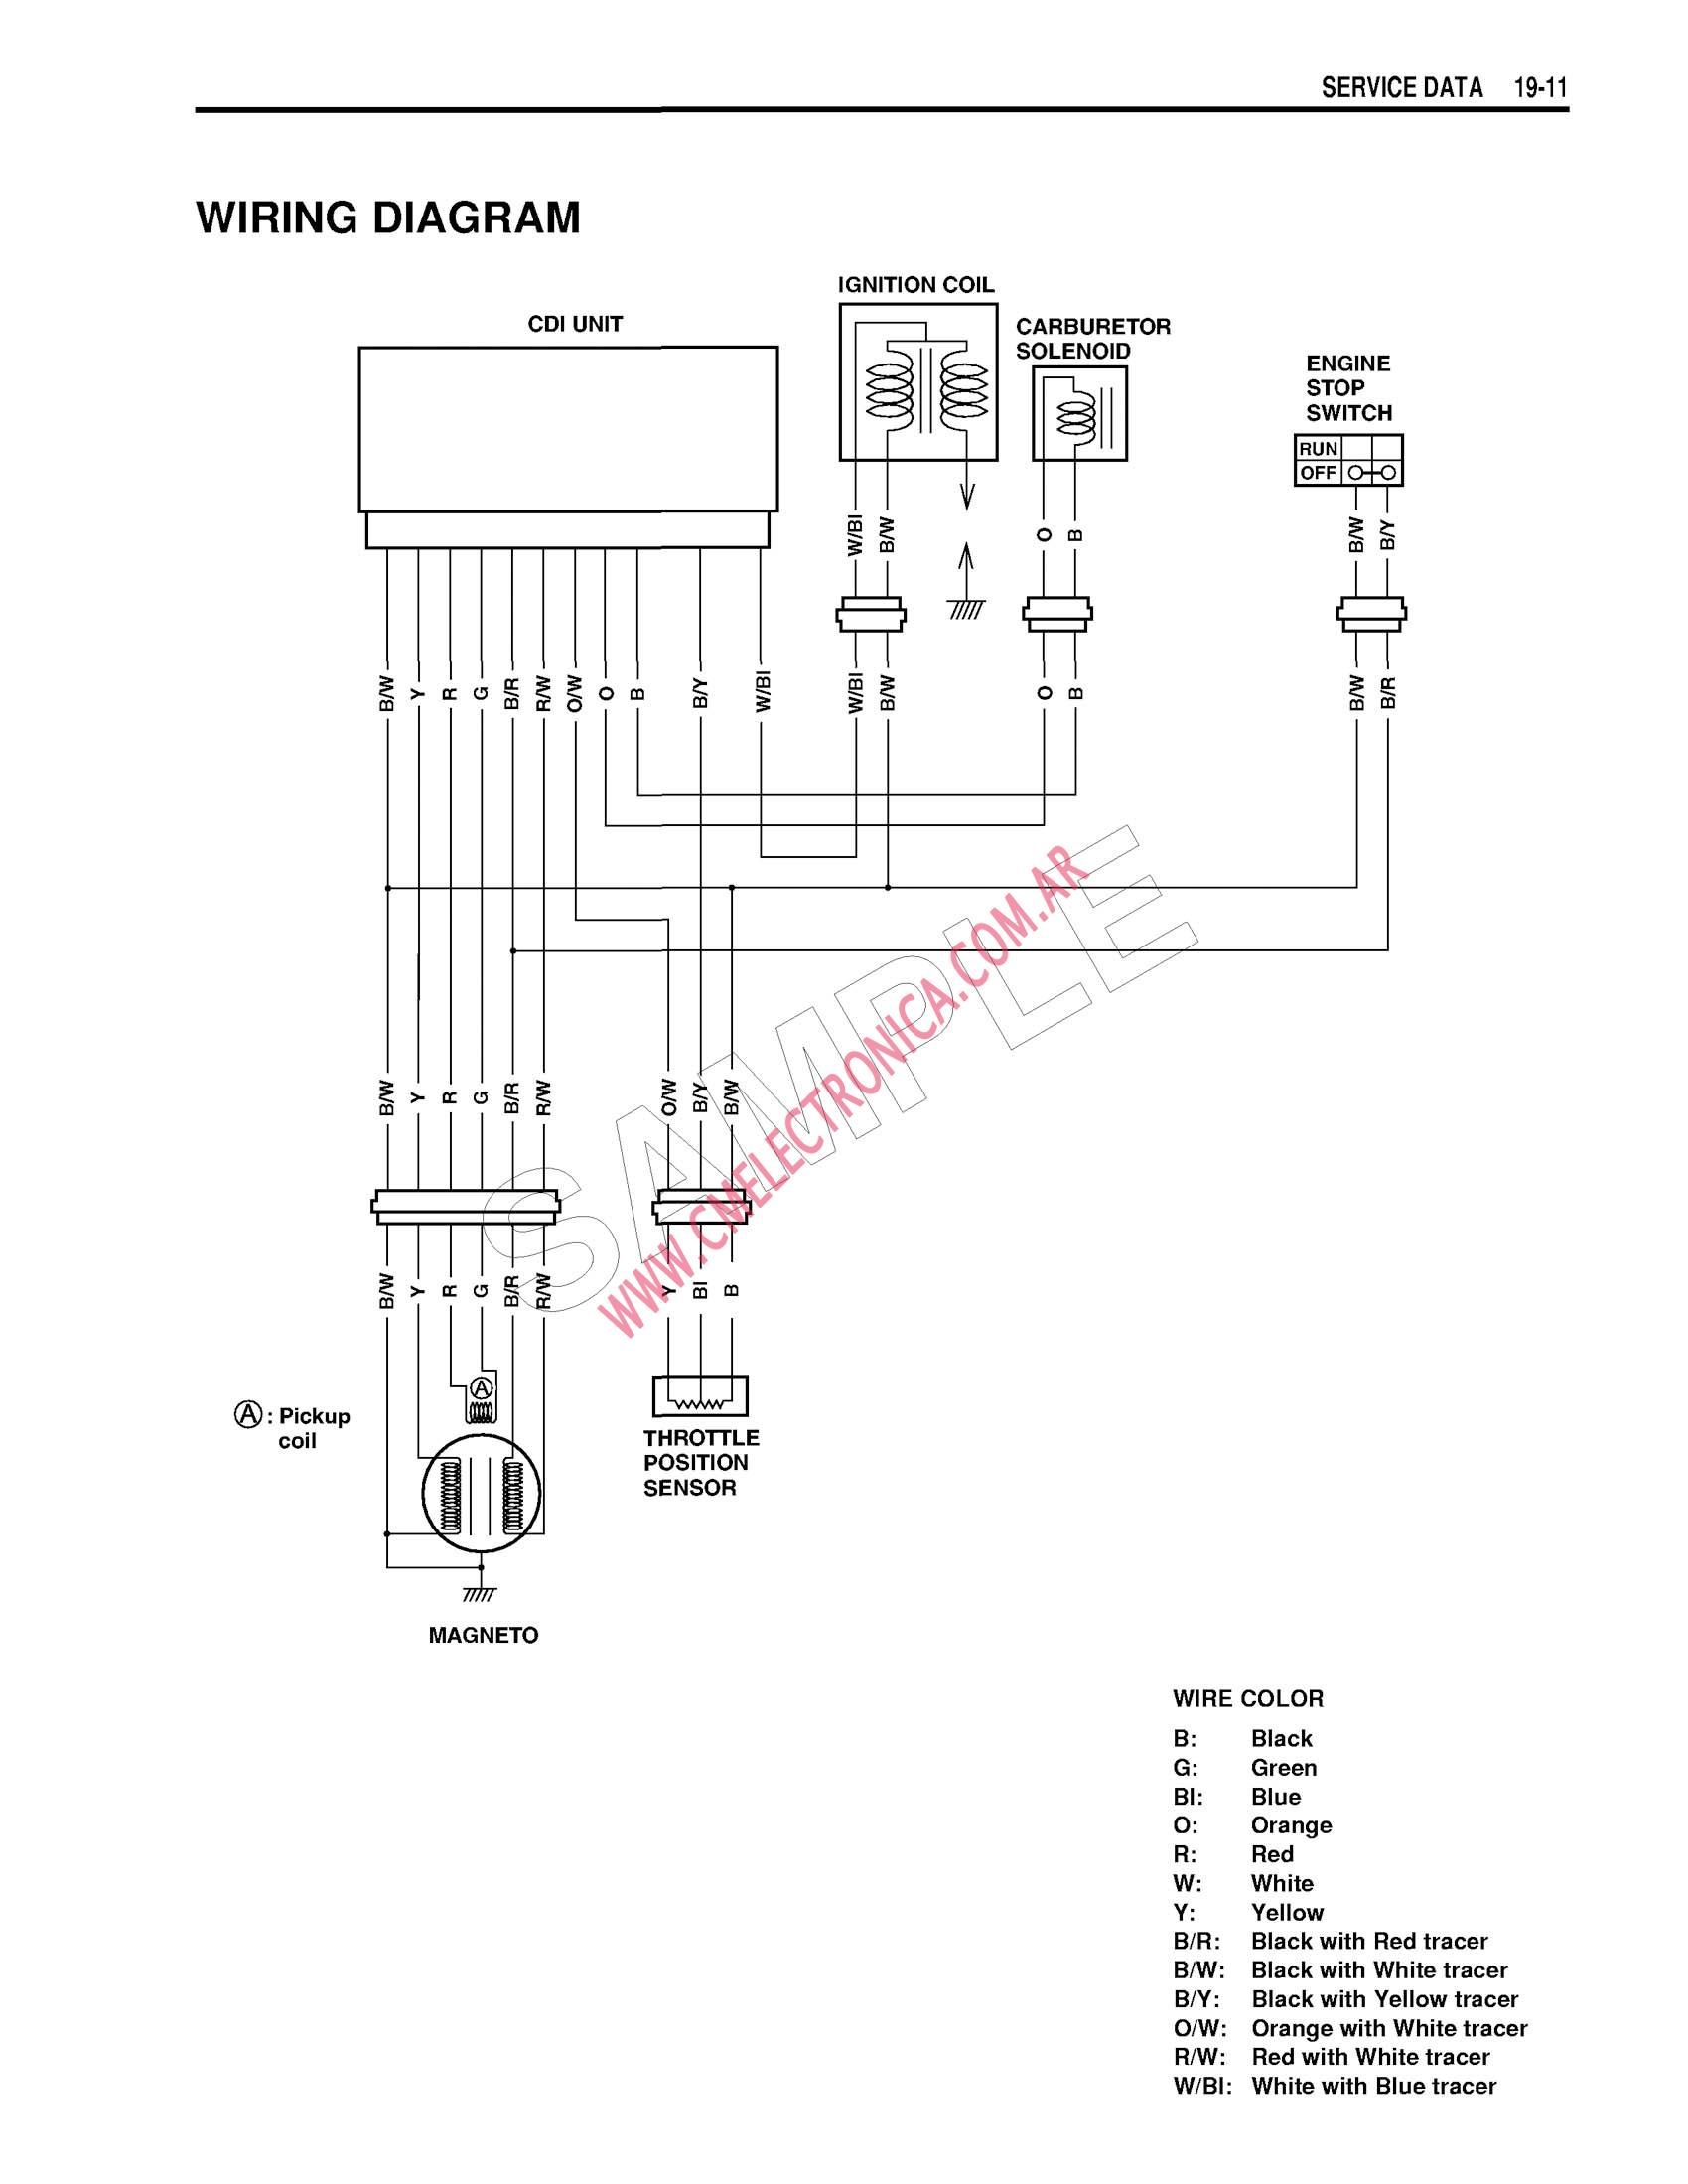 hight resolution of 1996 suzuki intruder 1400 wiring schematic wiring diagram1996 suzuki intruder 1400 wiring schematic